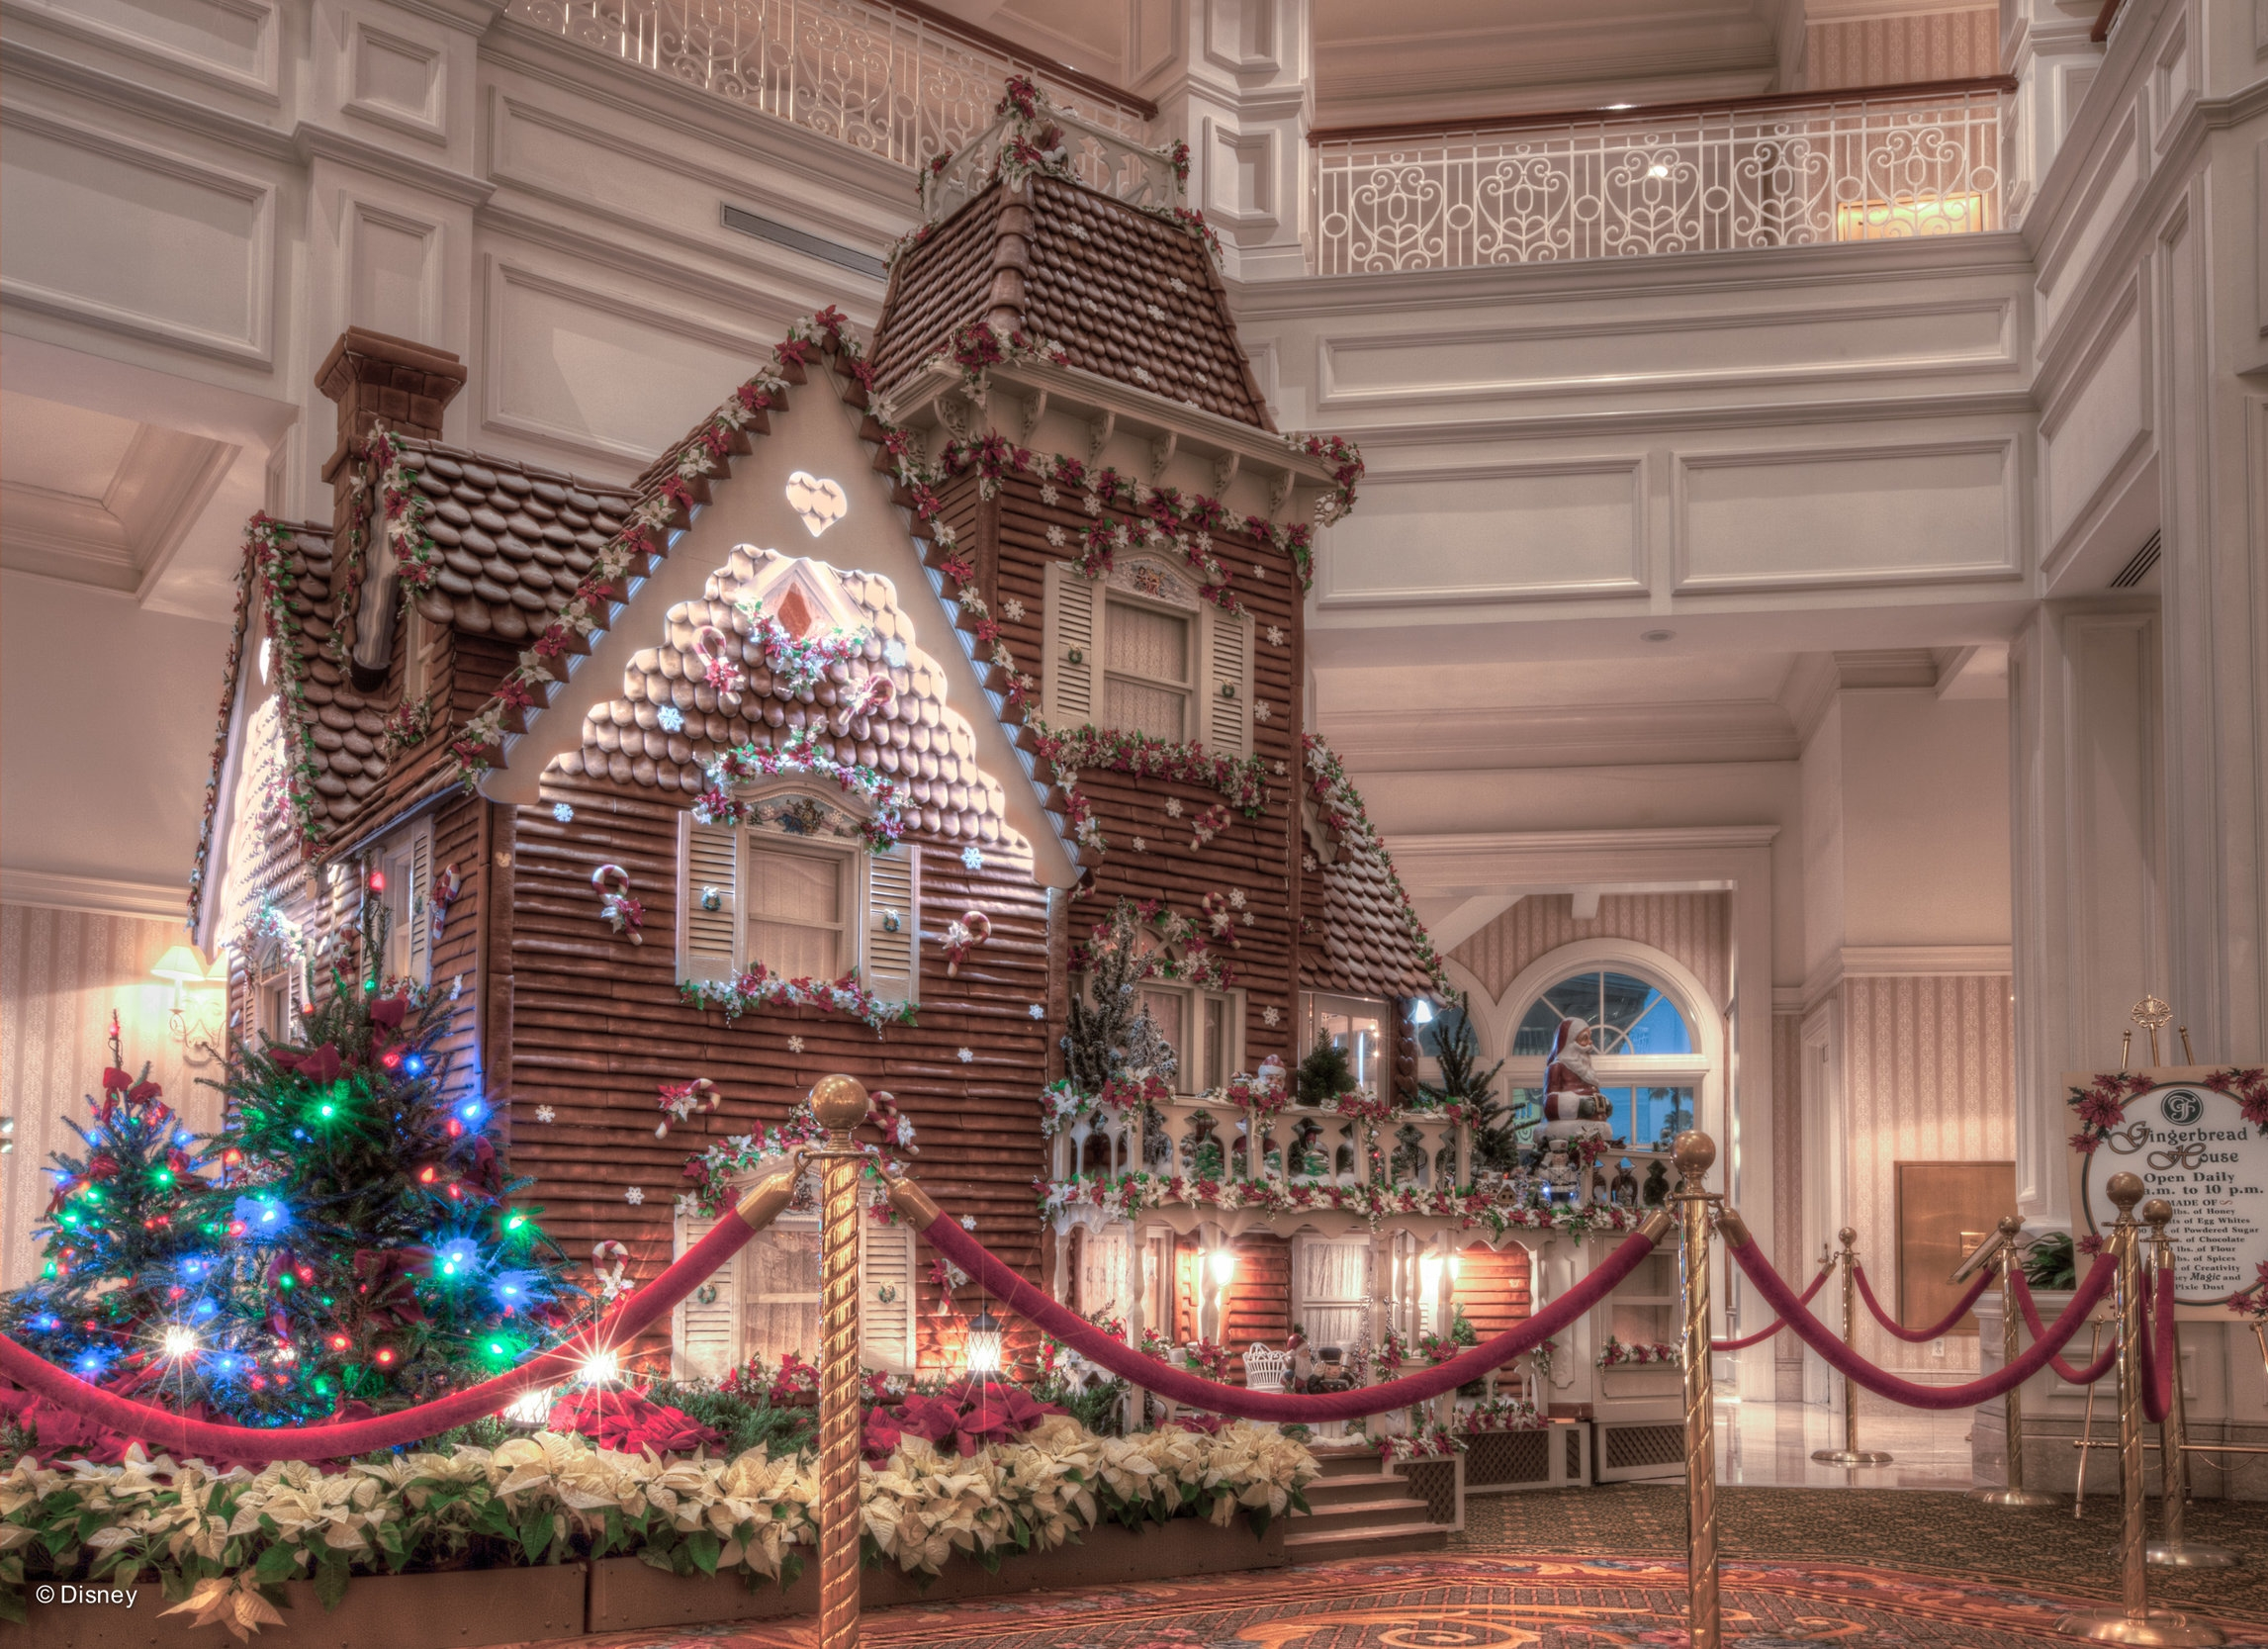 Gingerbread House in the lobby of the Grand Floridian